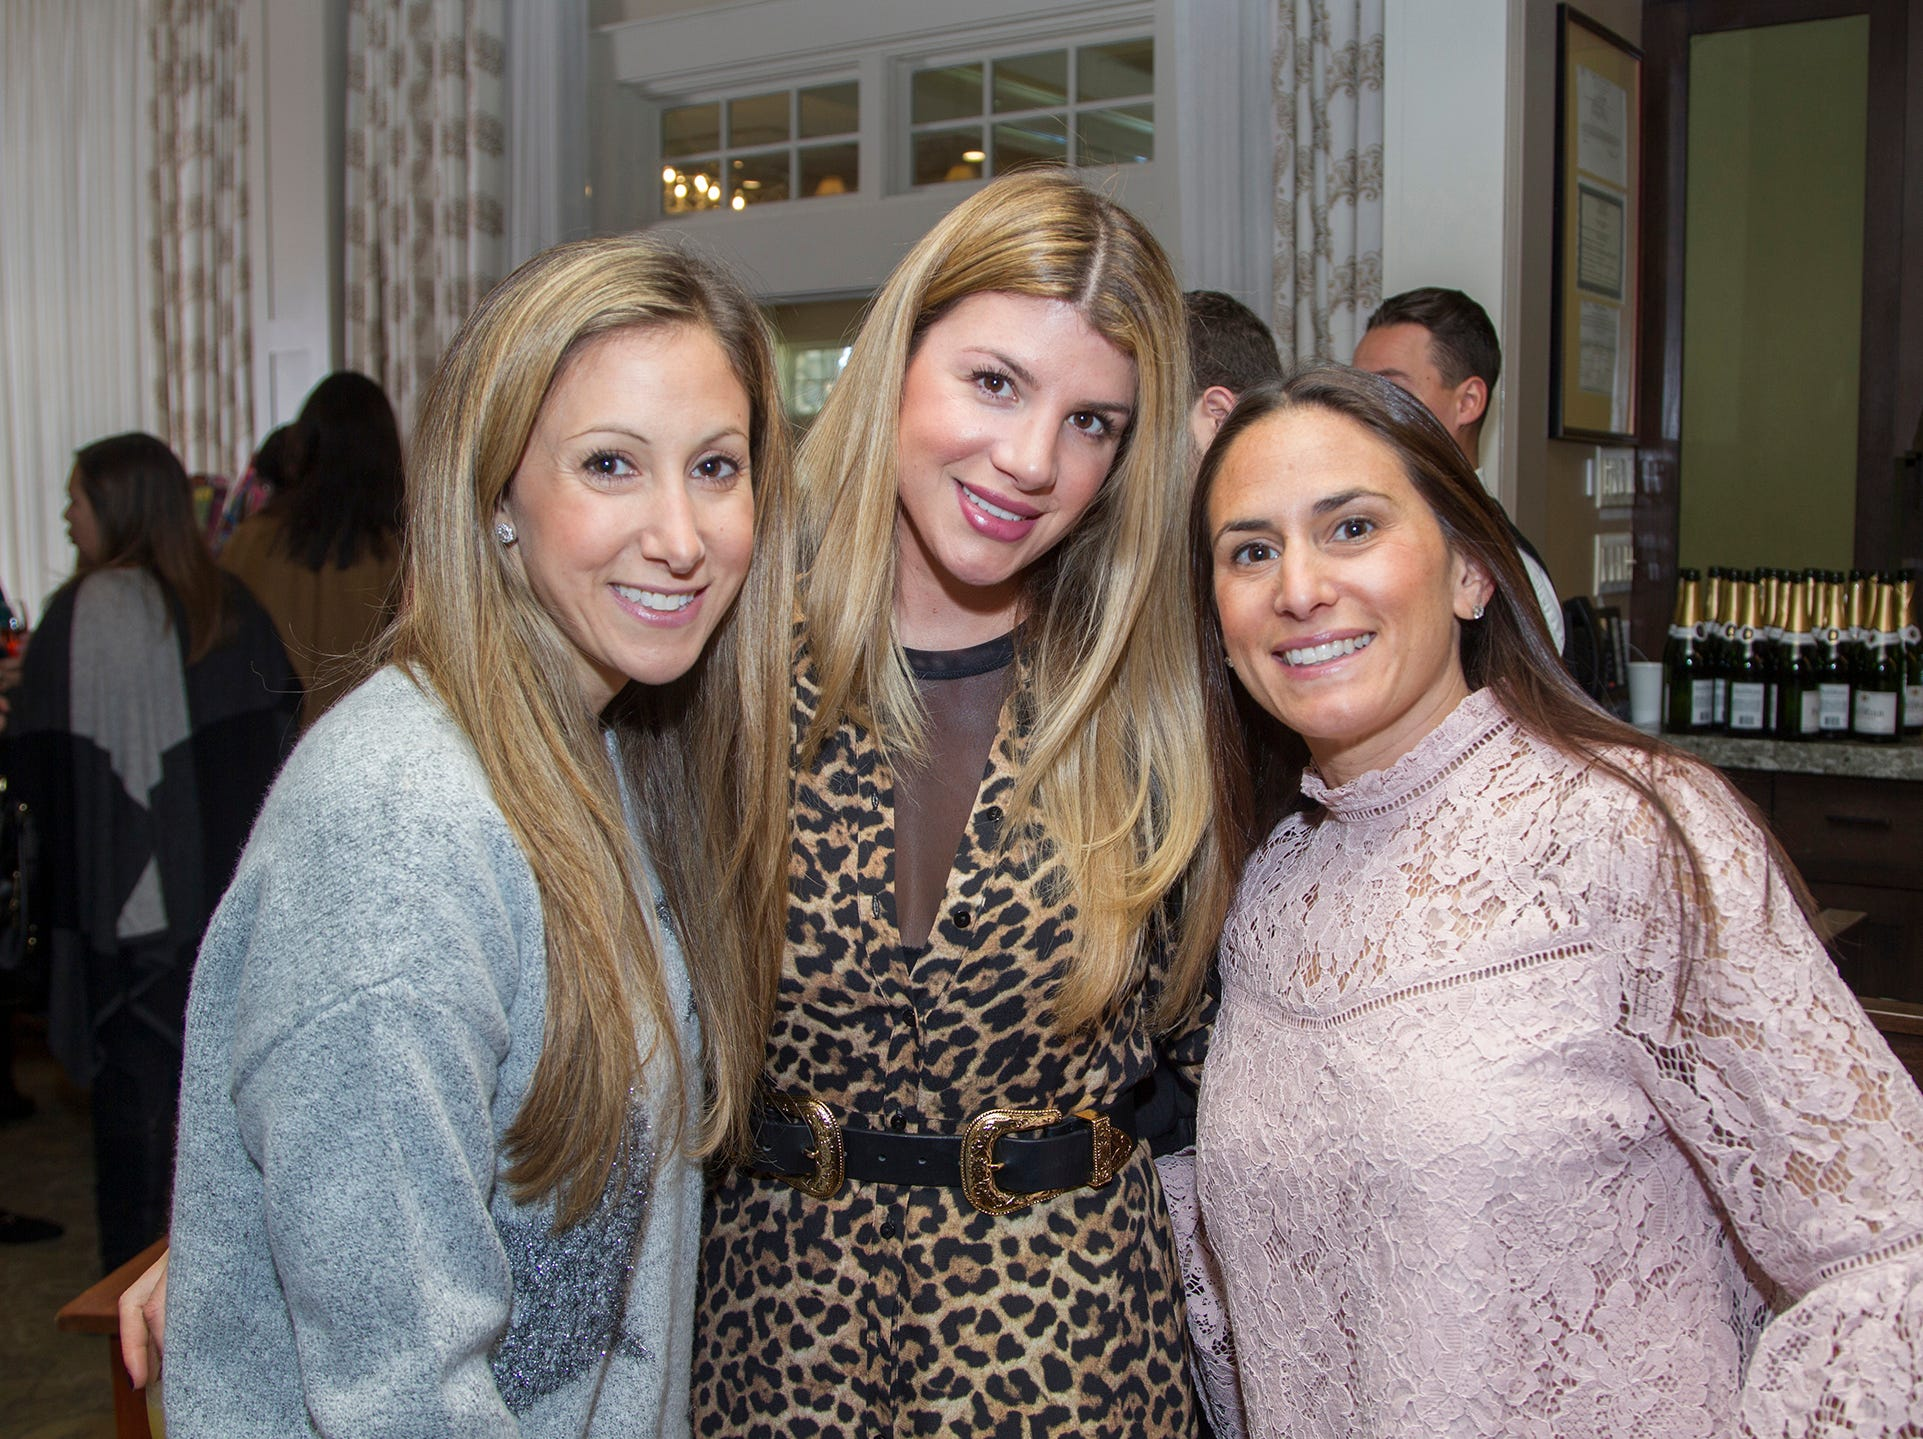 Stephanie Gurtman, Melissa Landau, Erica Fishman. Spring Lake Toys Foundation held its 3rd annual fundraising gala luncheon at Indian Trail Club in Franklin Lakes. The luncheon fundraiser raises funds for children with illnesses. 10/18/2018